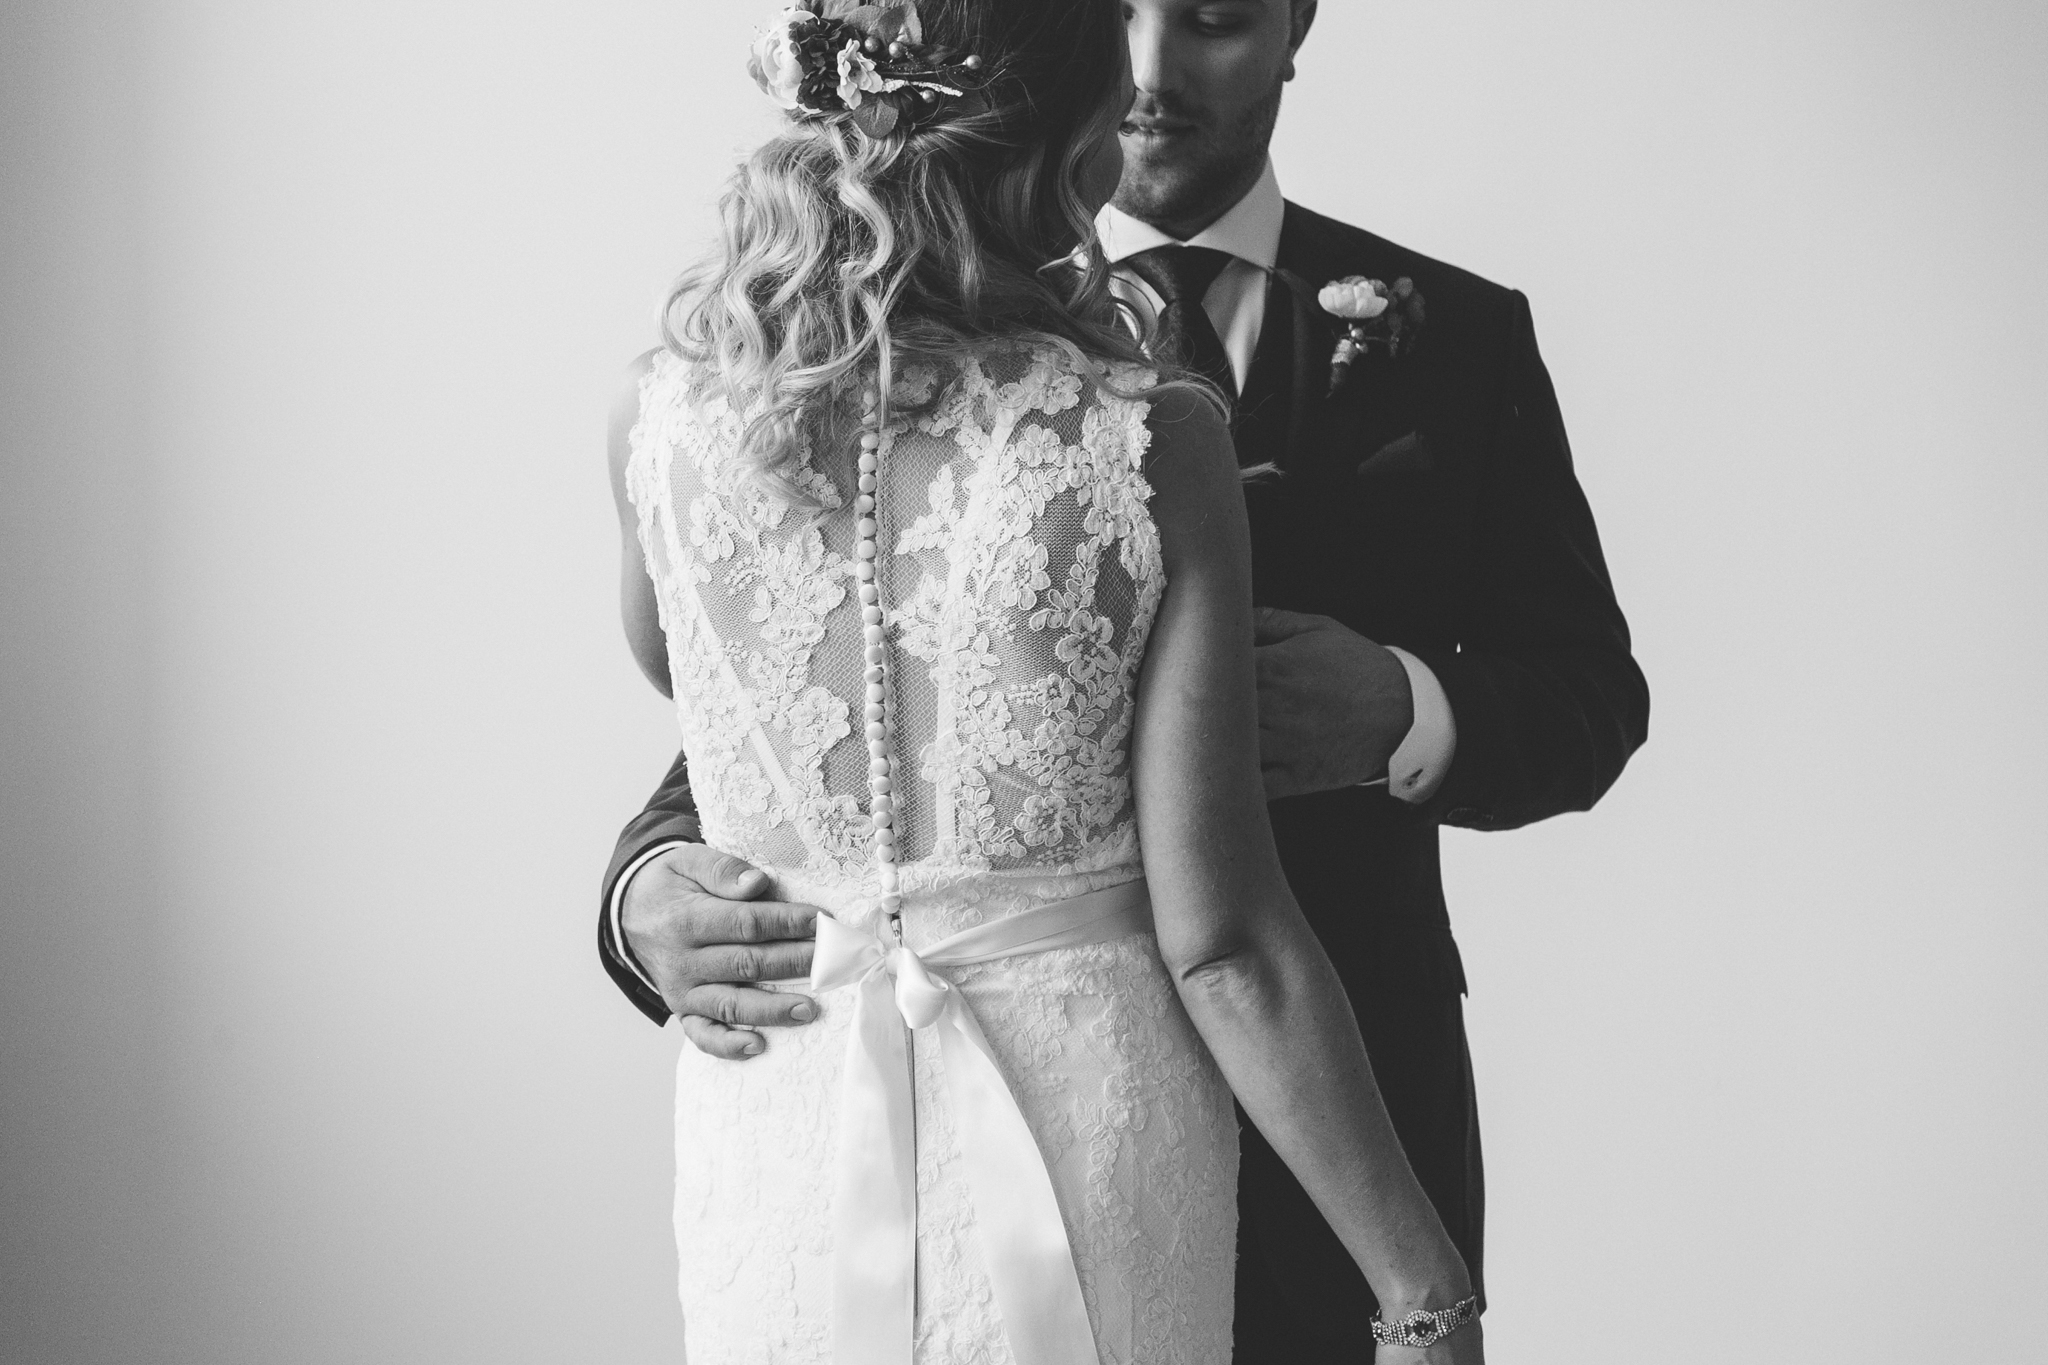 lethbridge-photographer-love-and-be-loved-photography-designed-to-dwell-wedding-katie-kelly-photo-image-picture-33.jpg